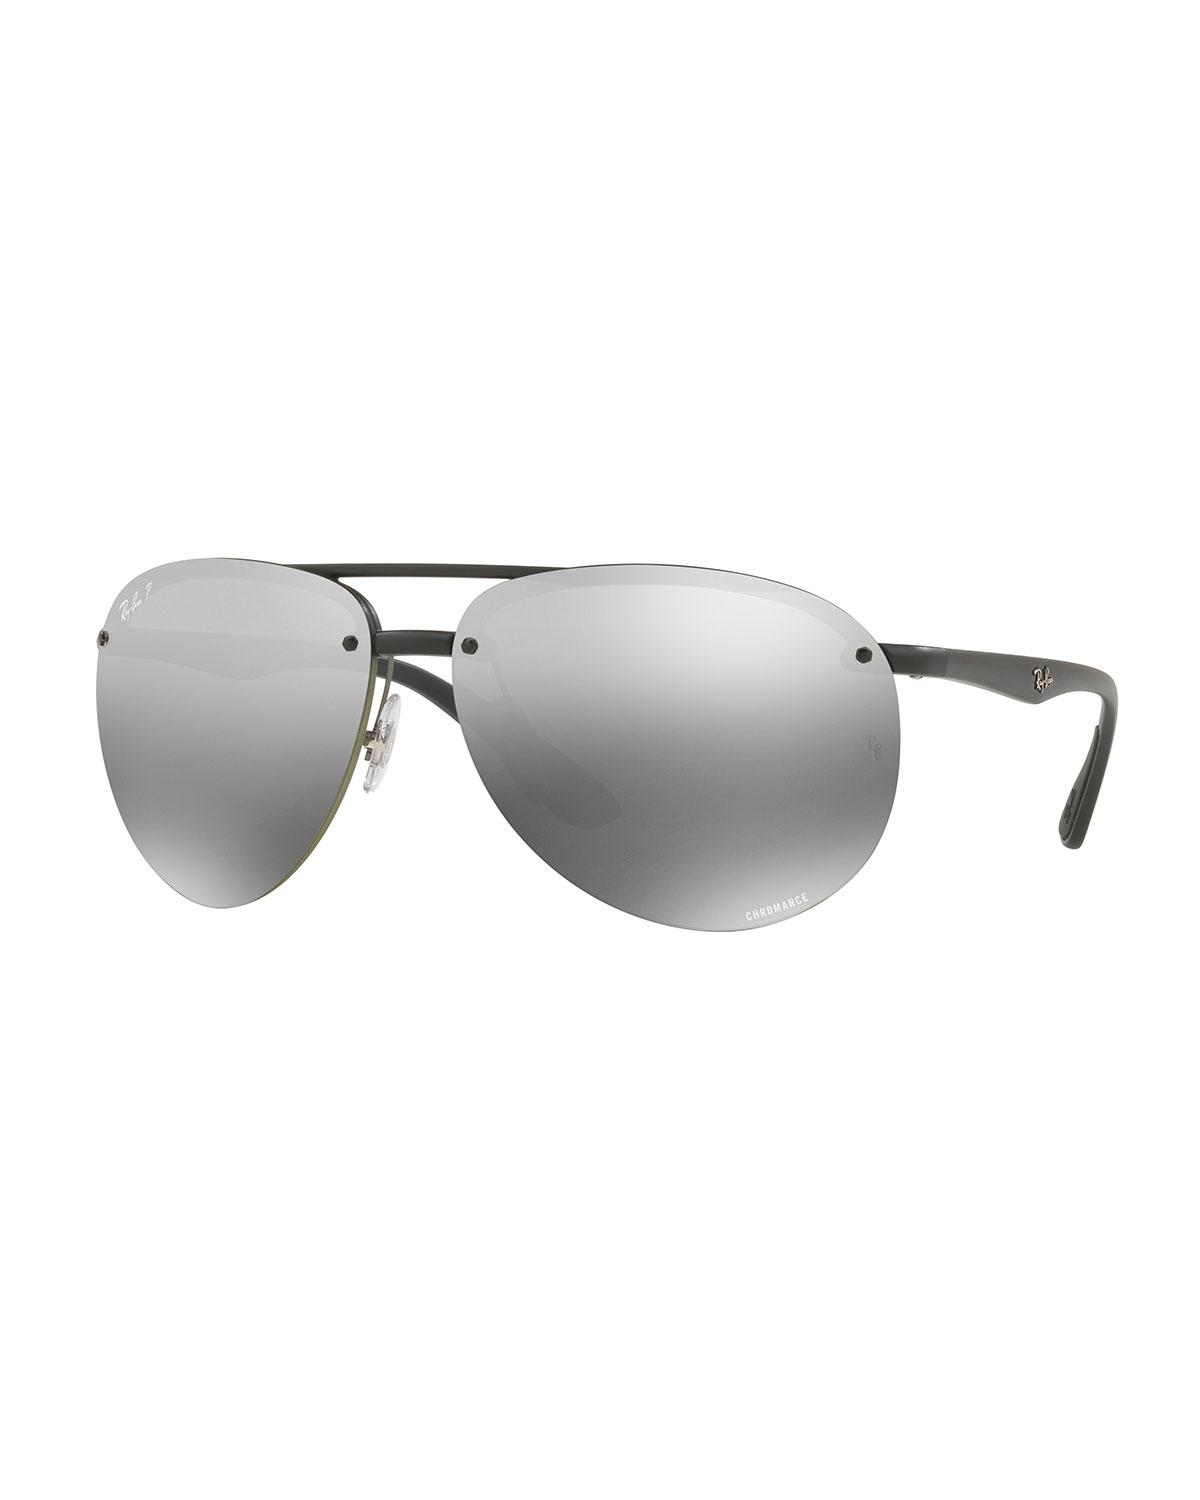 a496099639 Gallery. Previously sold at  Bergdorf Goodman · Men s Mirrored Sunglasses  ...